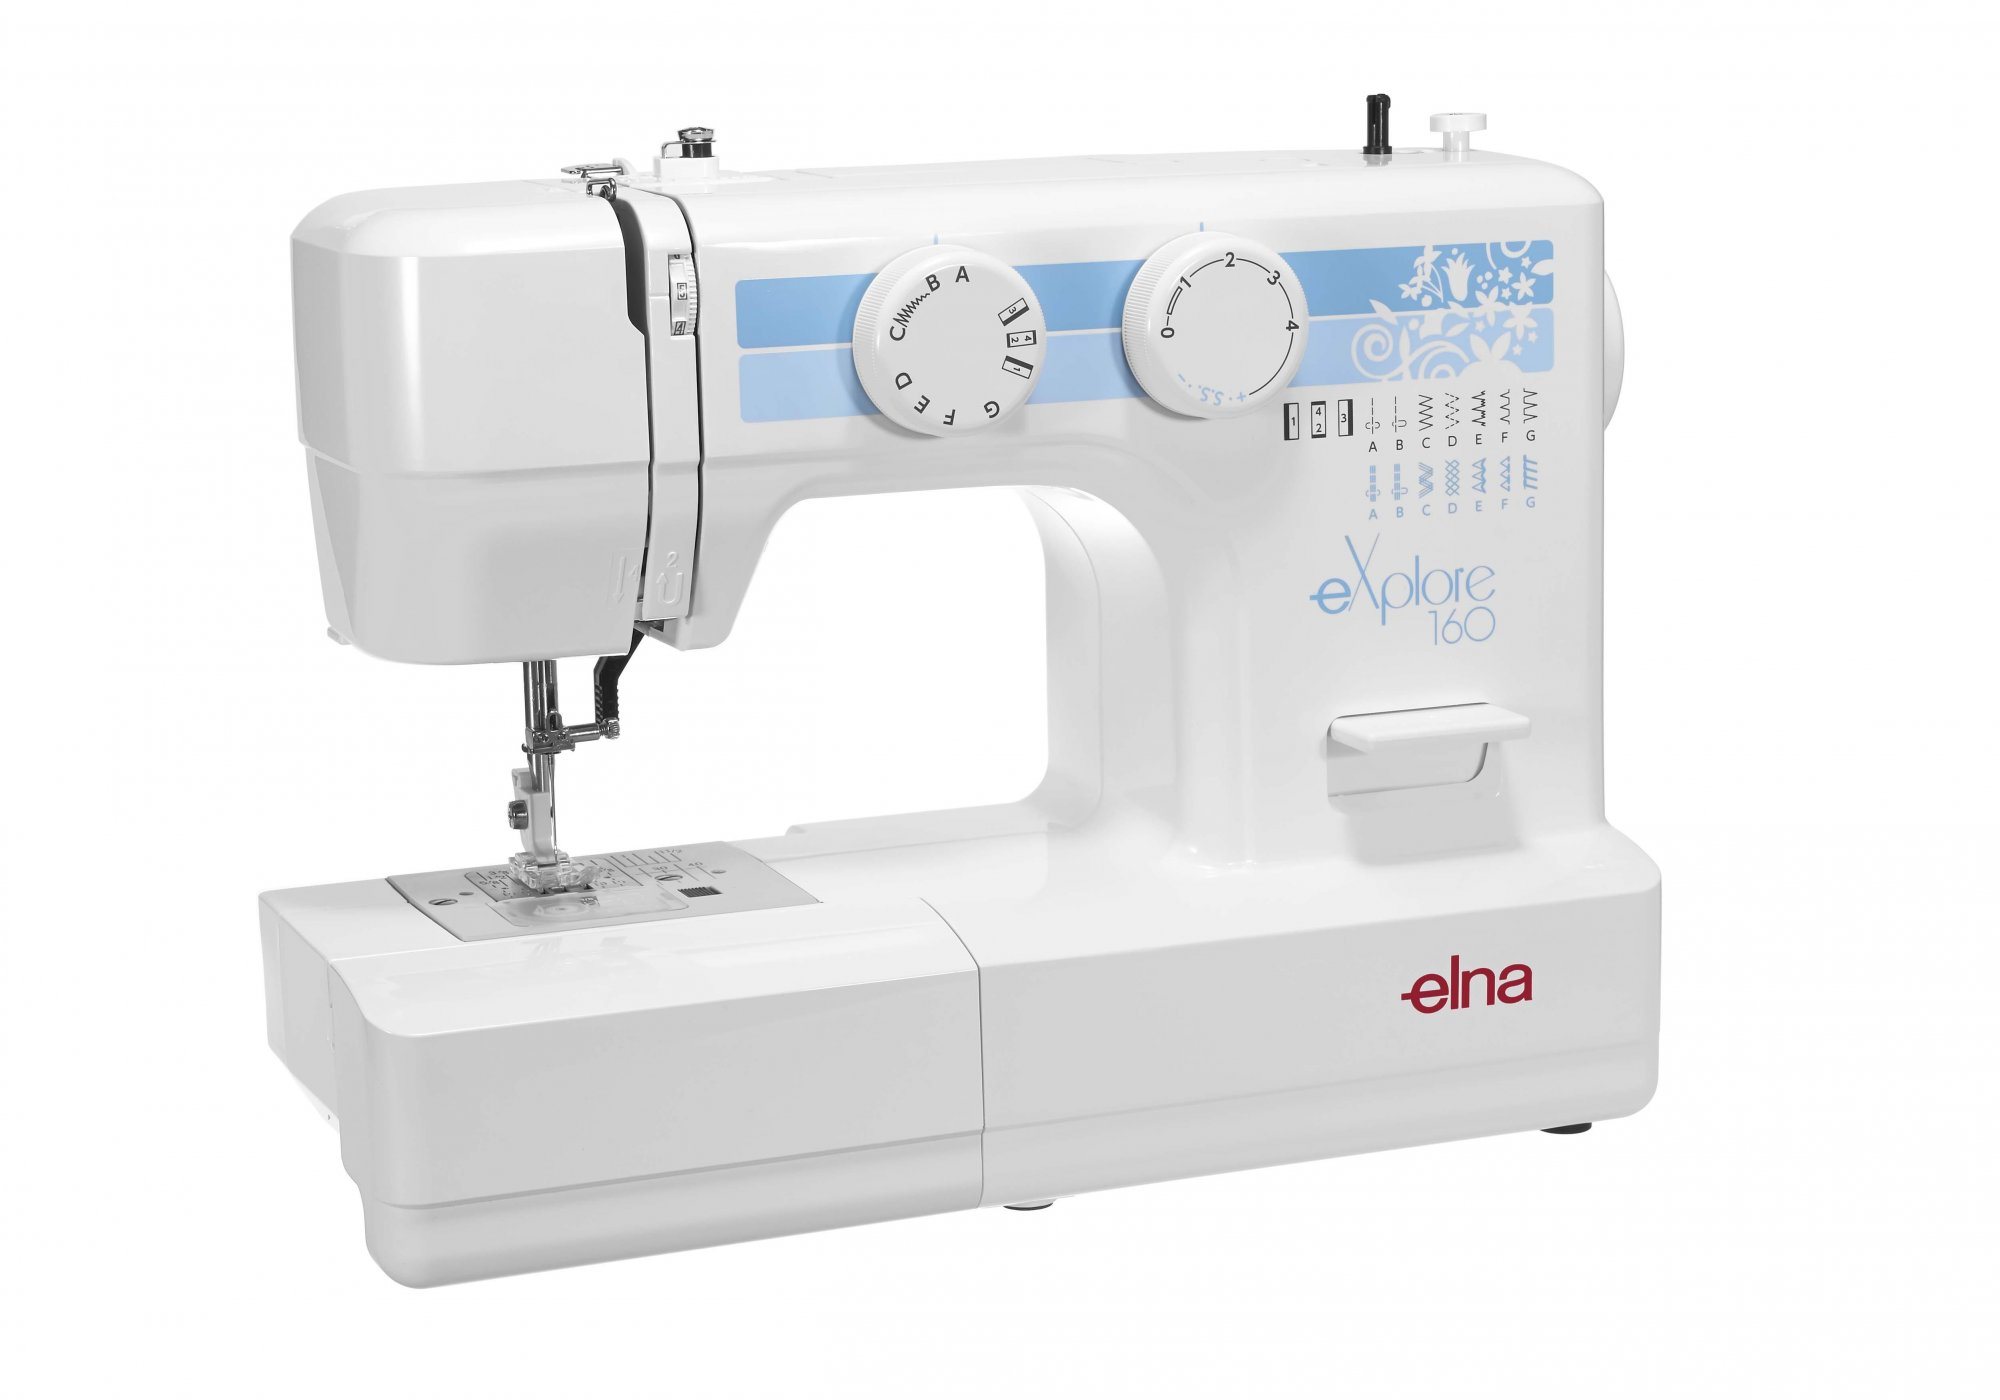 Elna eXplore EL160 Sewing Machine